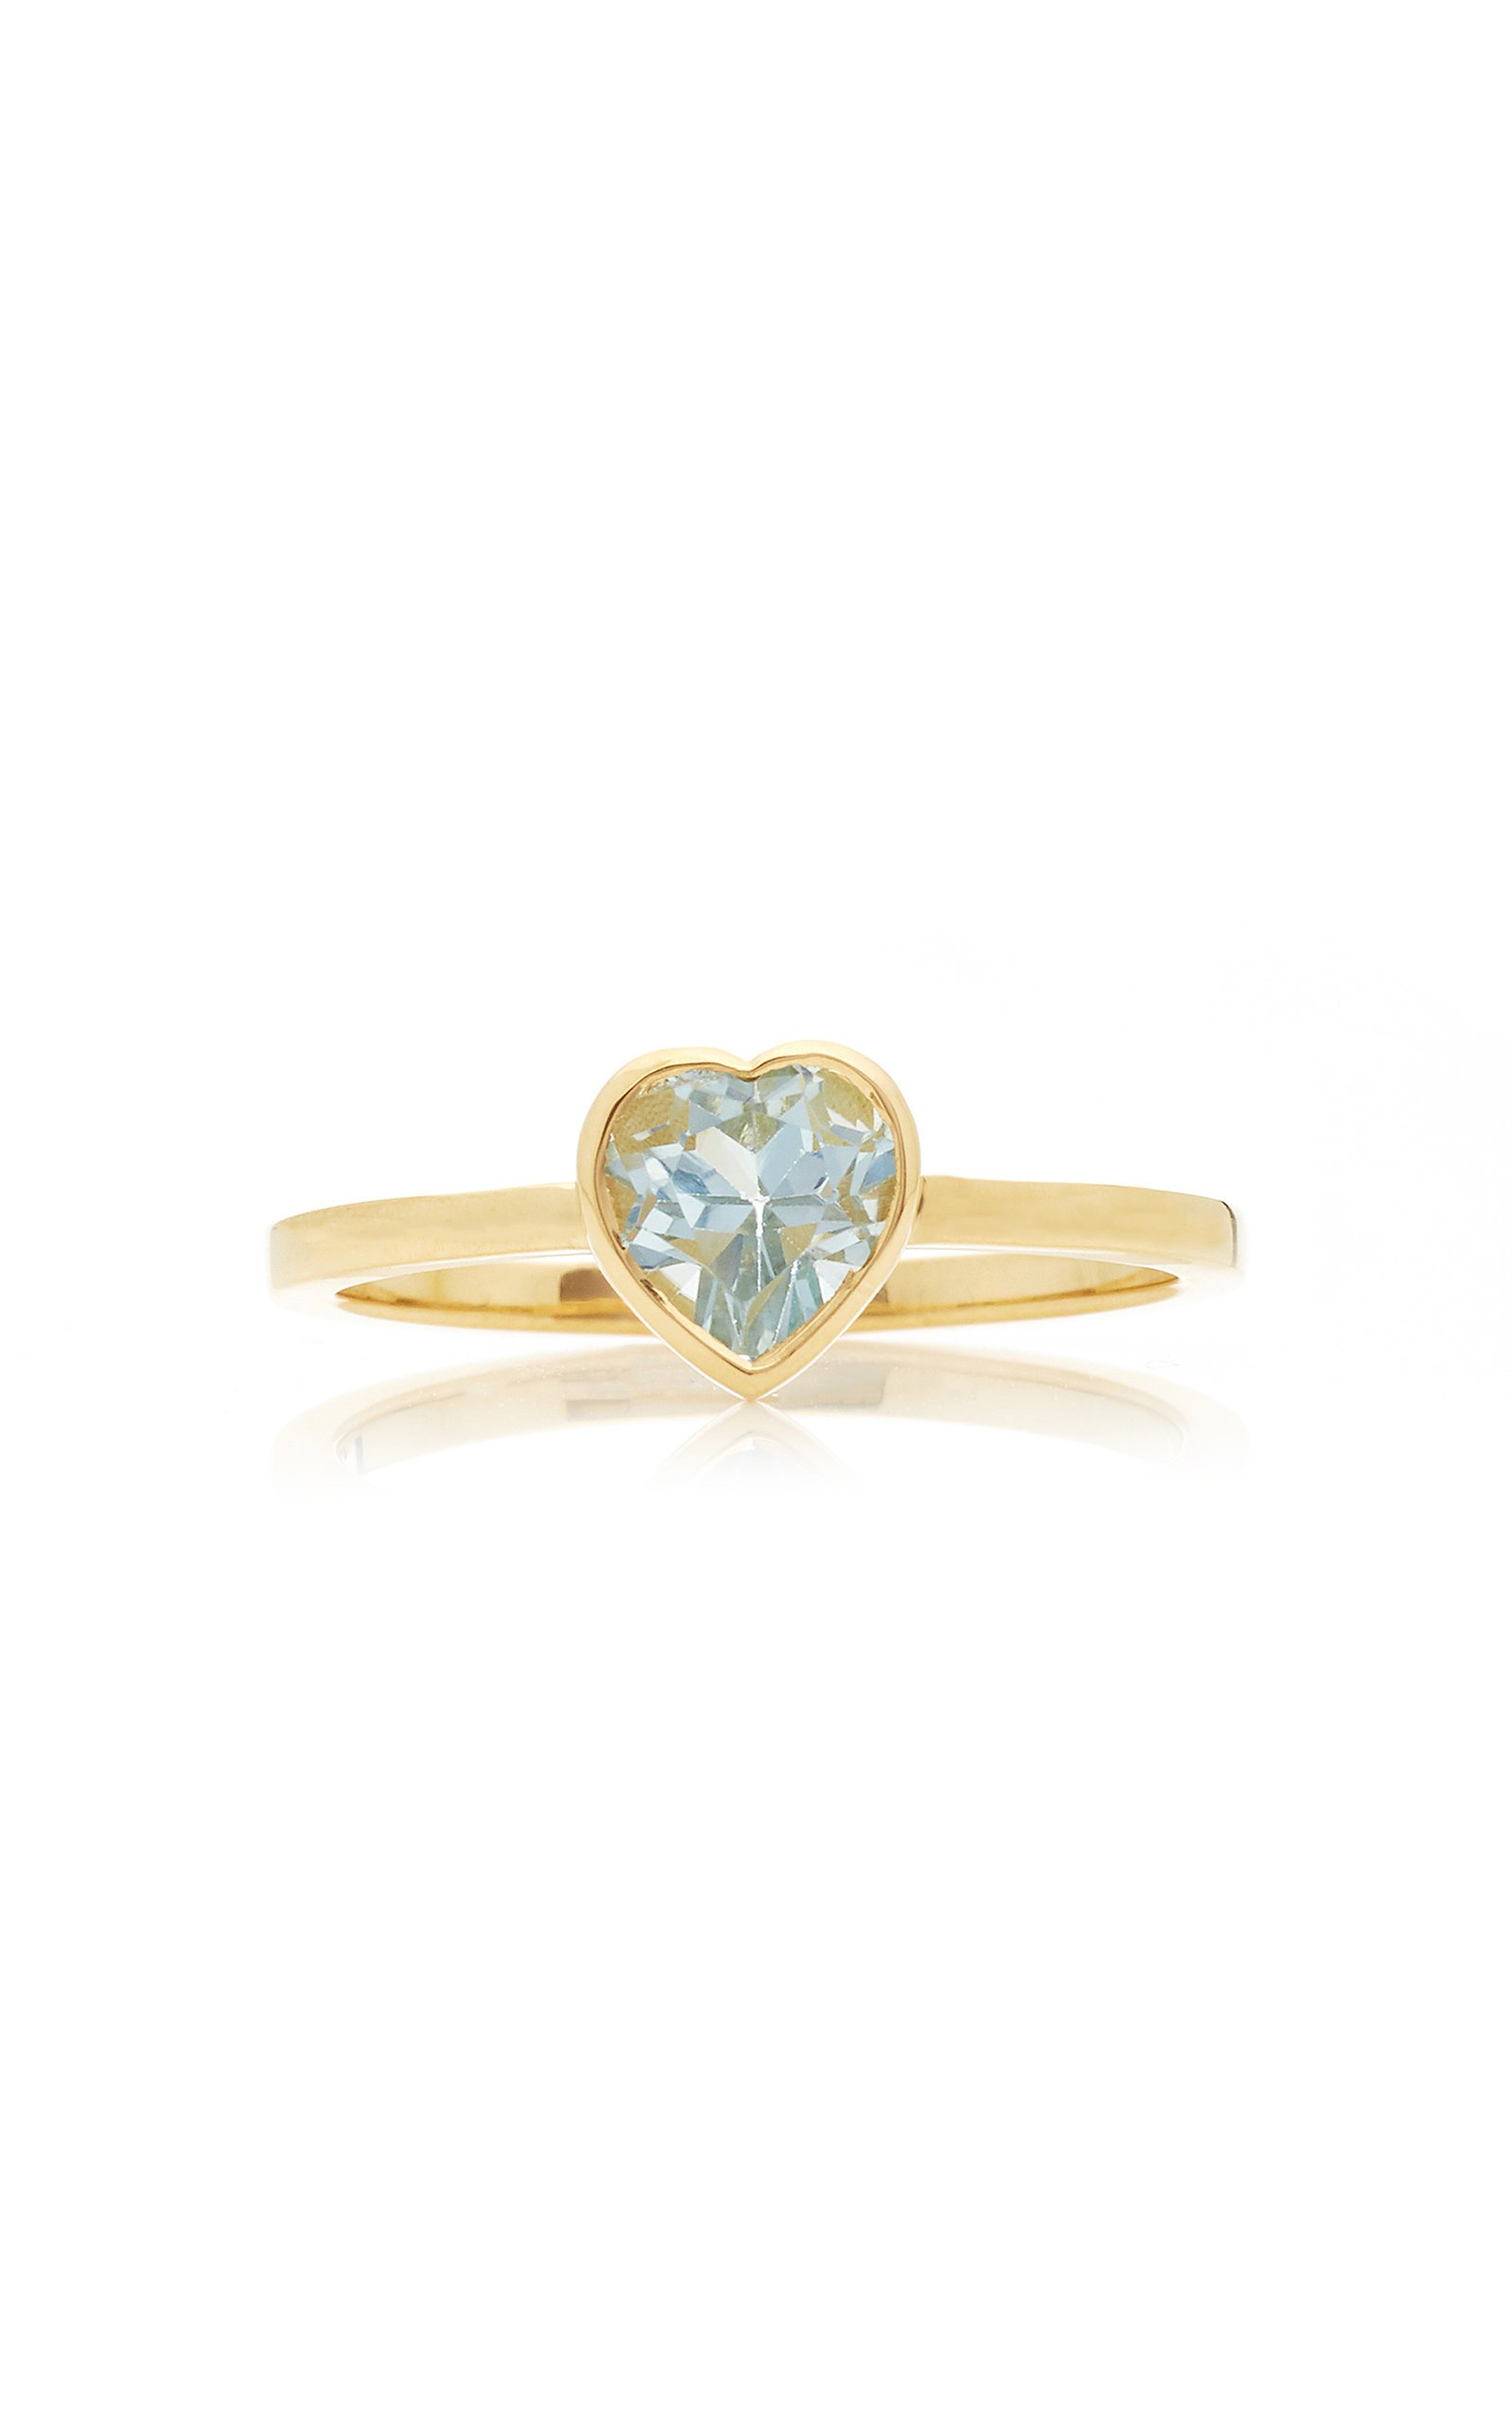 Katey Walker Tiny Heart 18K Gold and Topaz Ring Size: 6